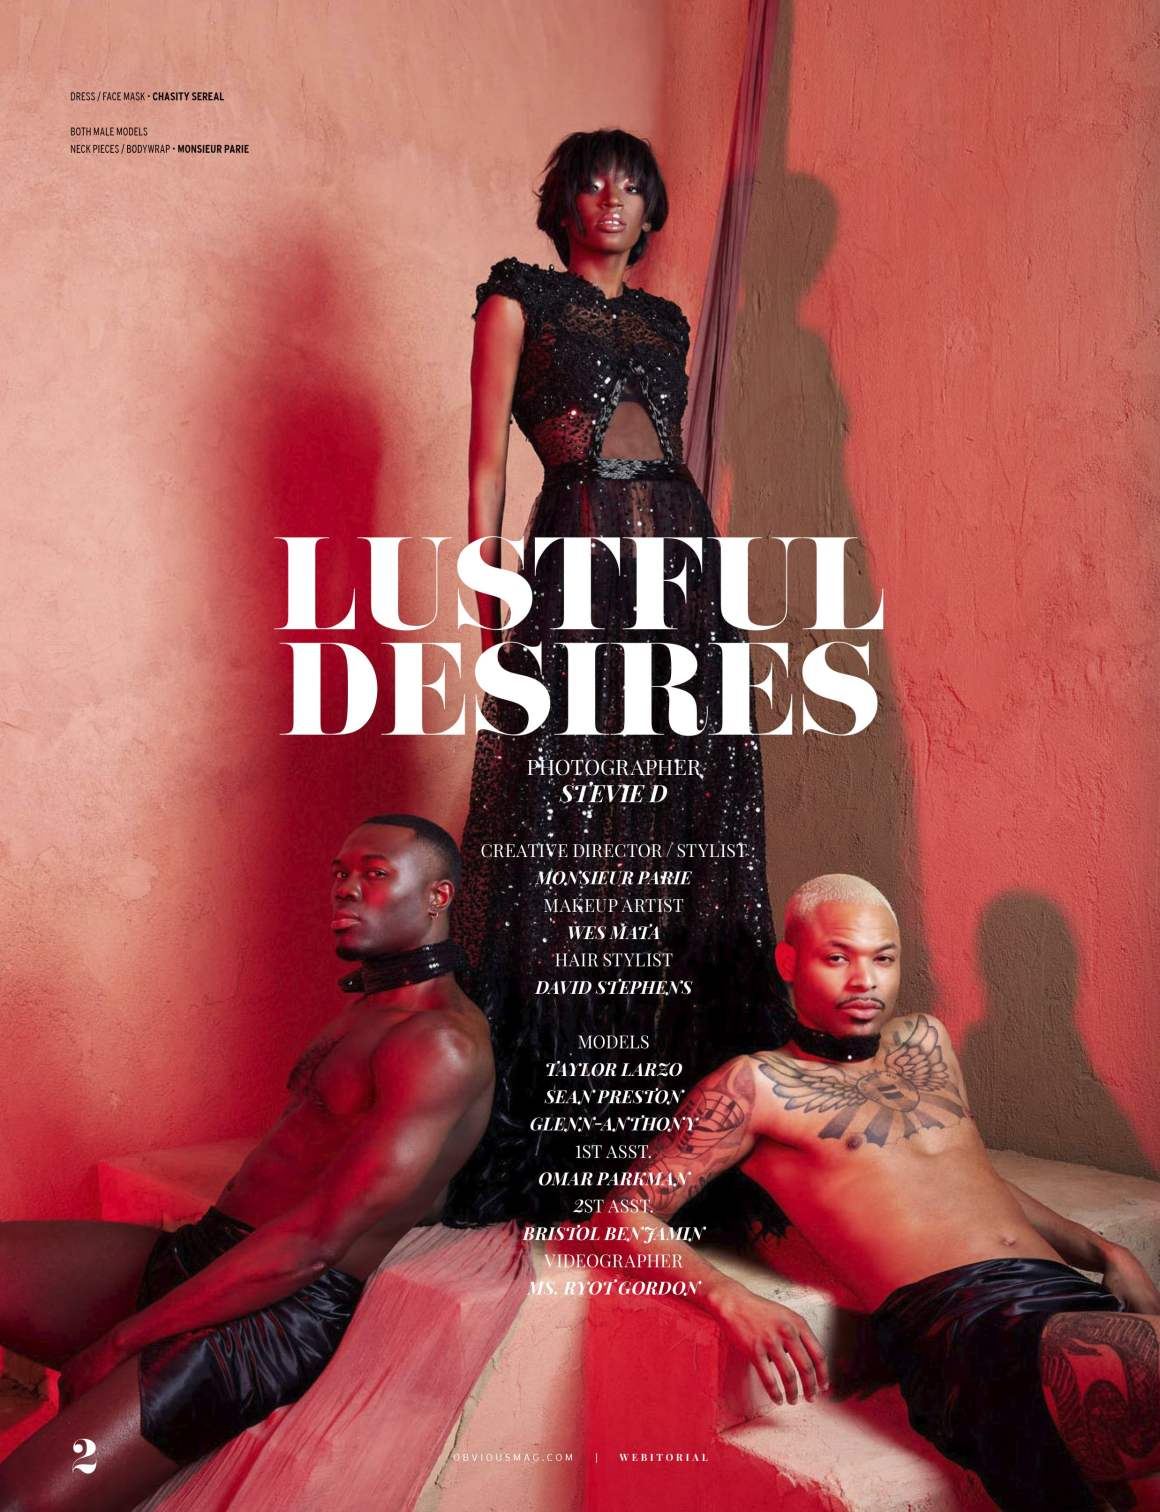 Taylor Larzo, Sean Preston, and Glenn-Anthony star in 'Lustful Desires' photographed by Stevie D. Creative Direction and styling by Monsieur Parie.